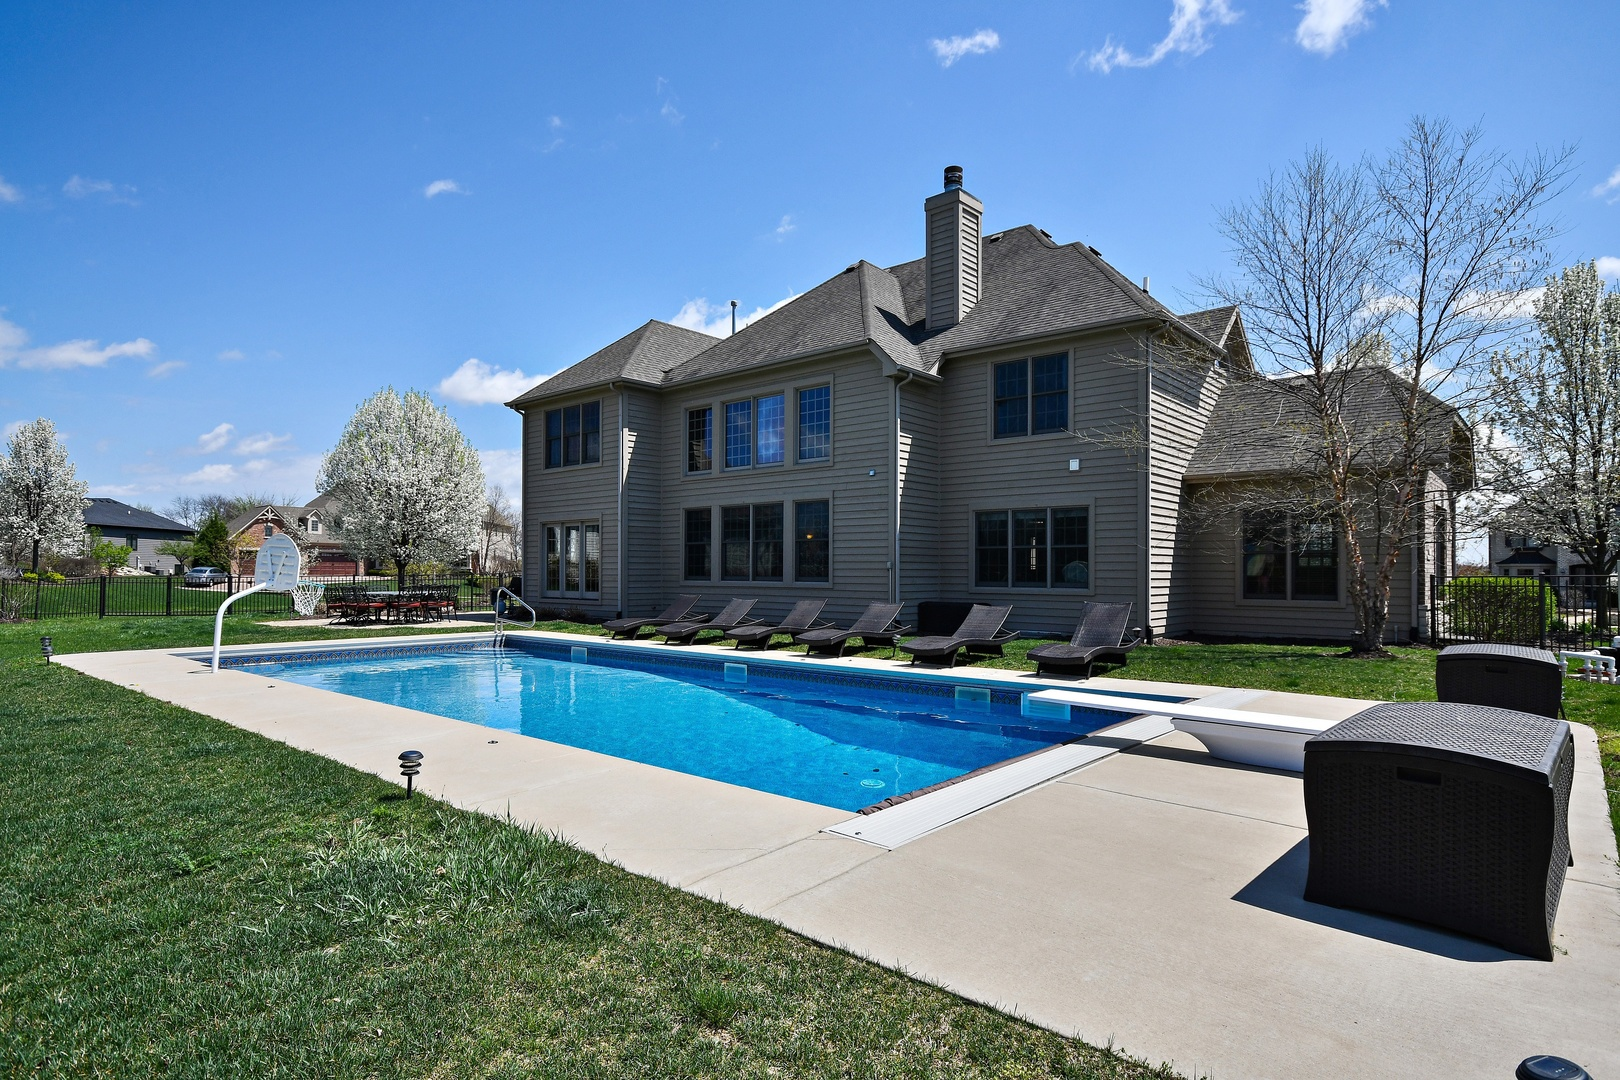 4025 River View, St. Charles, Illinois, 60174